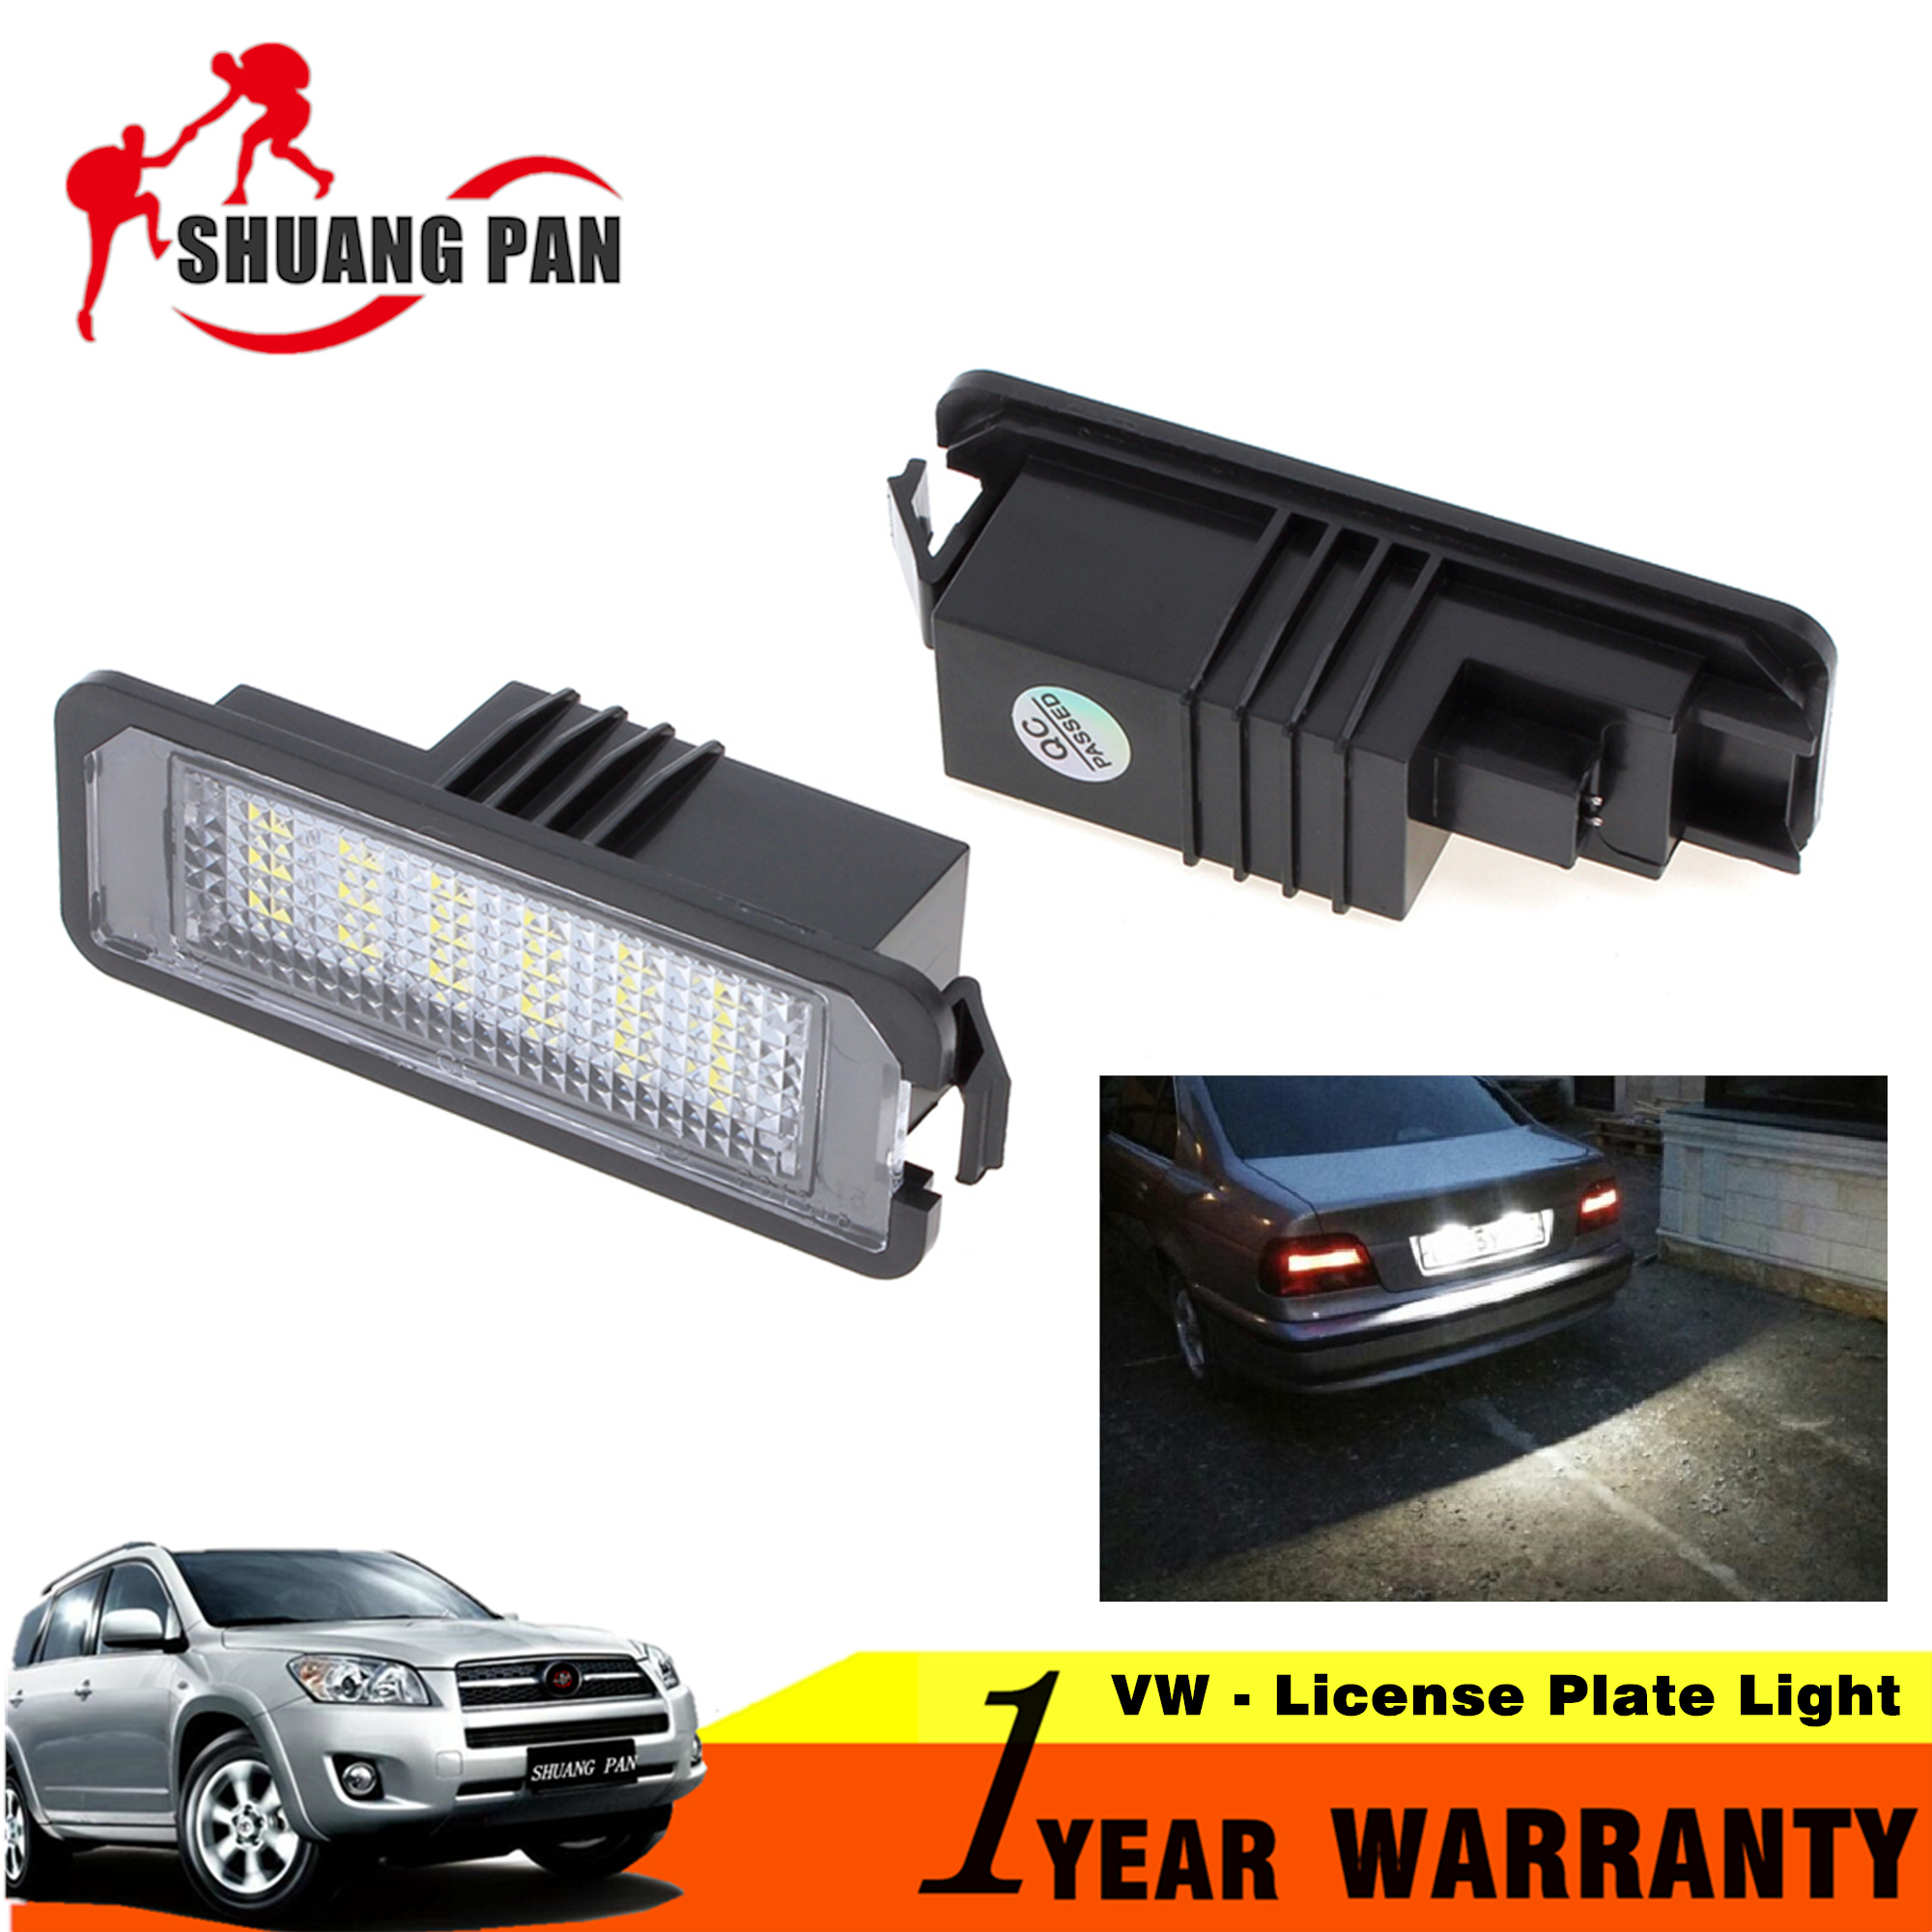 2pcs 12V Car led License Plate Light for VW Golf GTI 4 5 6 CC Beetle Scirocco  Beetle/ for Porsche  Cayman Boxster 3528SMD cawanerl car 2835 smd canbus interior dome map trunk license plate glove box light led kit white for vw volkswagen golf 6 gti